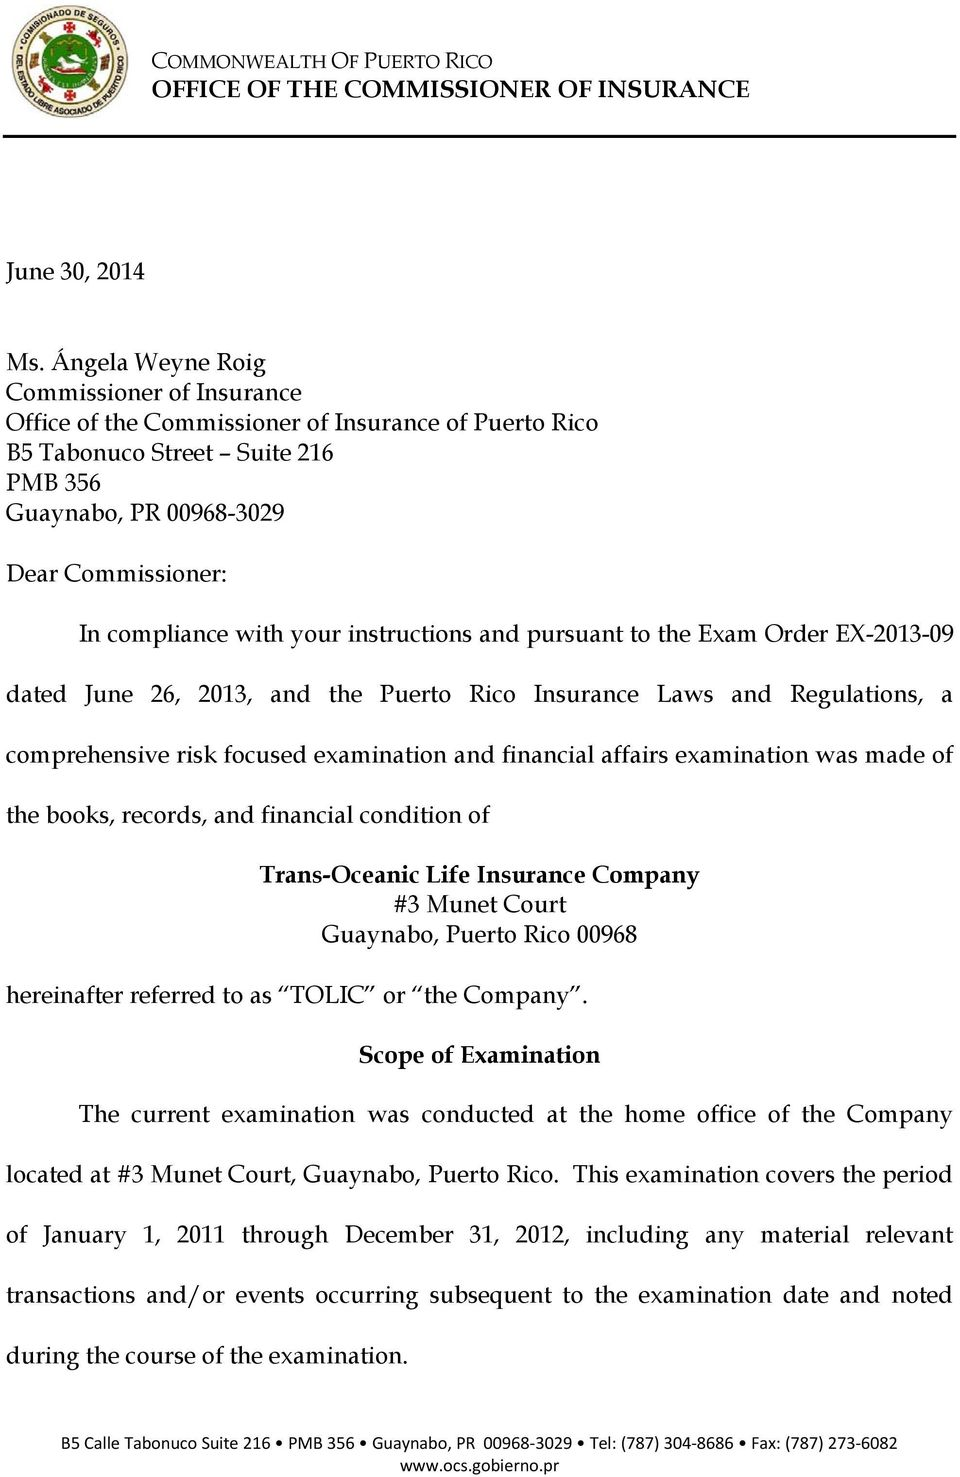 your instructions and pursuant to the Exam Order EX-2013-09 dated June 26, 2013, and the Puerto Rico Insurance Laws and Regulations, a comprehensive risk focused examination and financial affairs